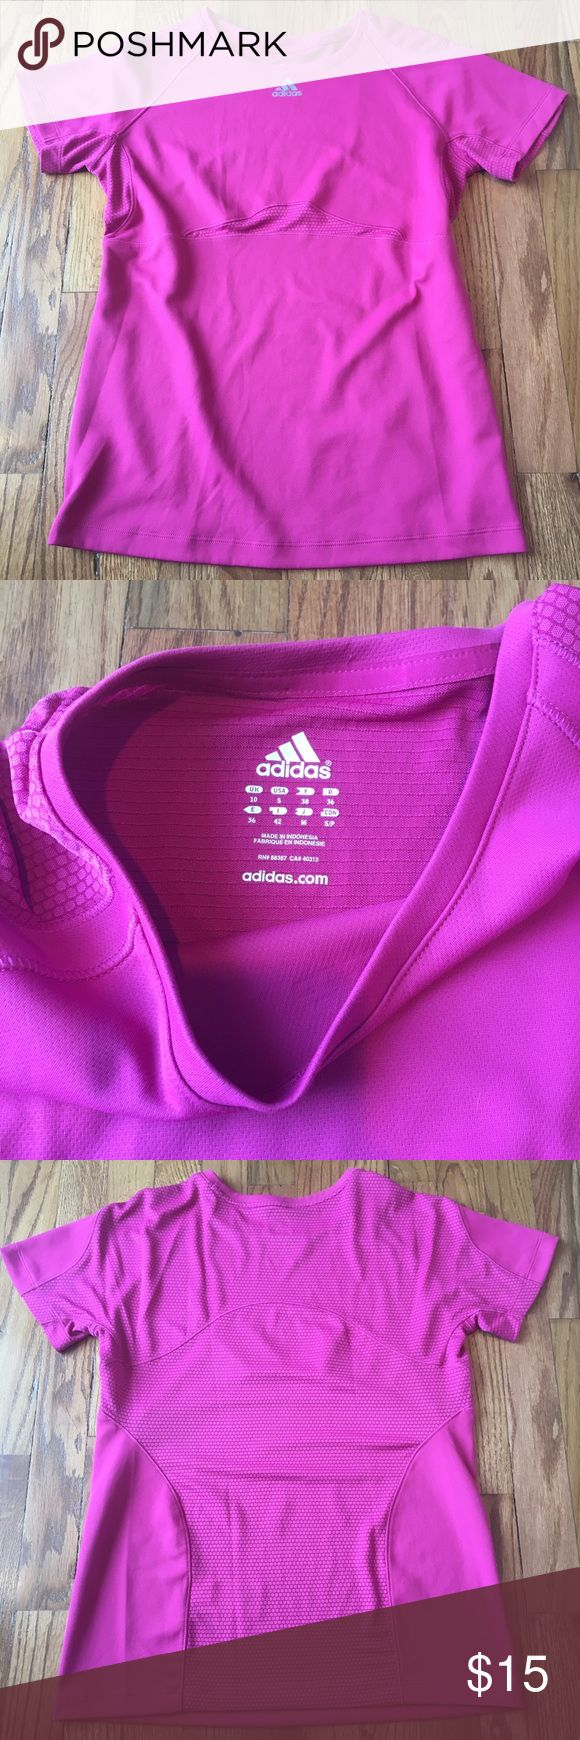 Pink Adidas workout shirt Super cute workout shirt by Adidas. Why not work out in bright pink and get some attention!? Great condition. Adidas Tops Tees - Short Sleeve